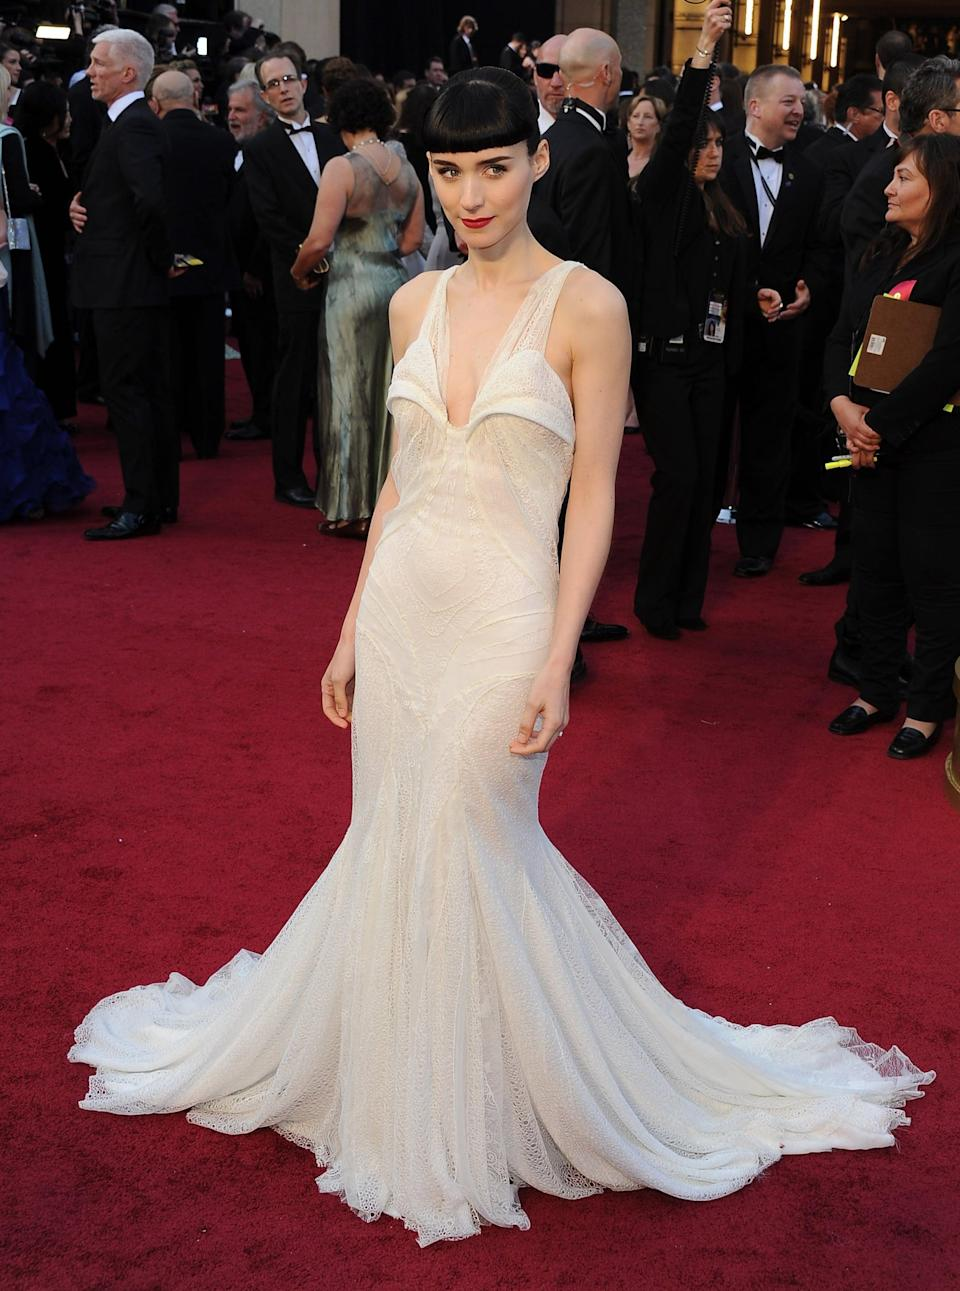 <p>Rooney's elegant white Givenchy gown still had plenty of bite - just like her character in <strong>The Girl With the Dragon Tattoo</strong></p>